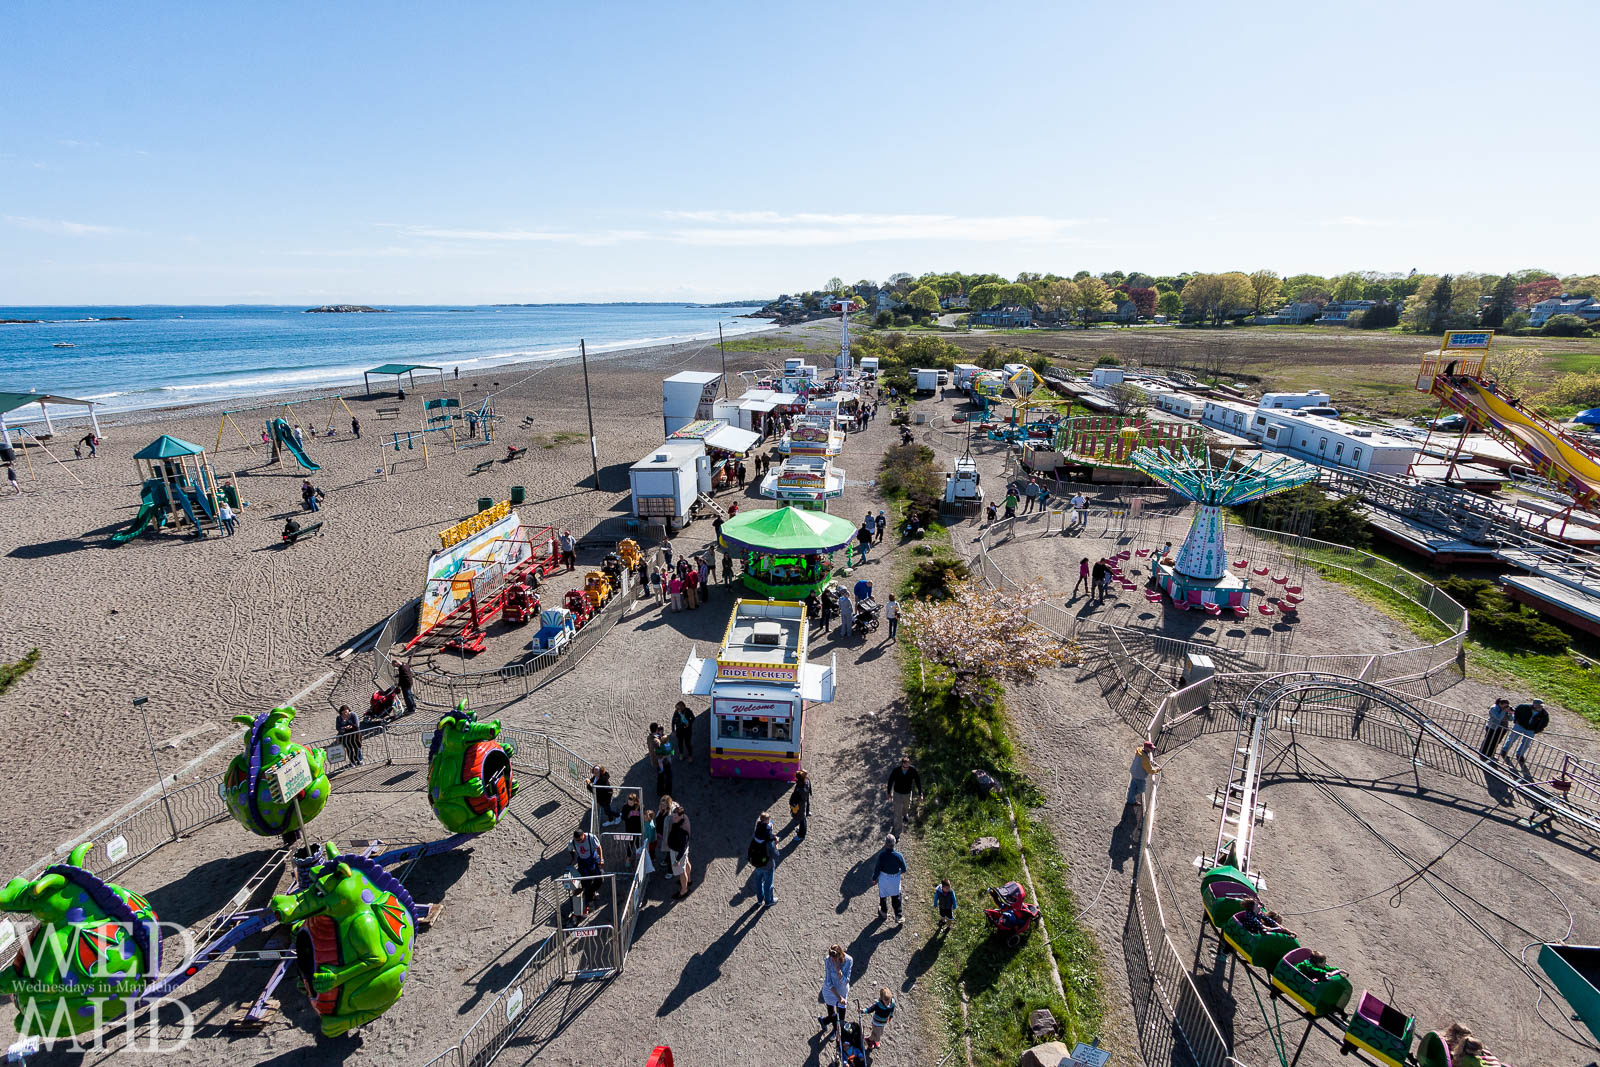 Devereux Beach Carnival